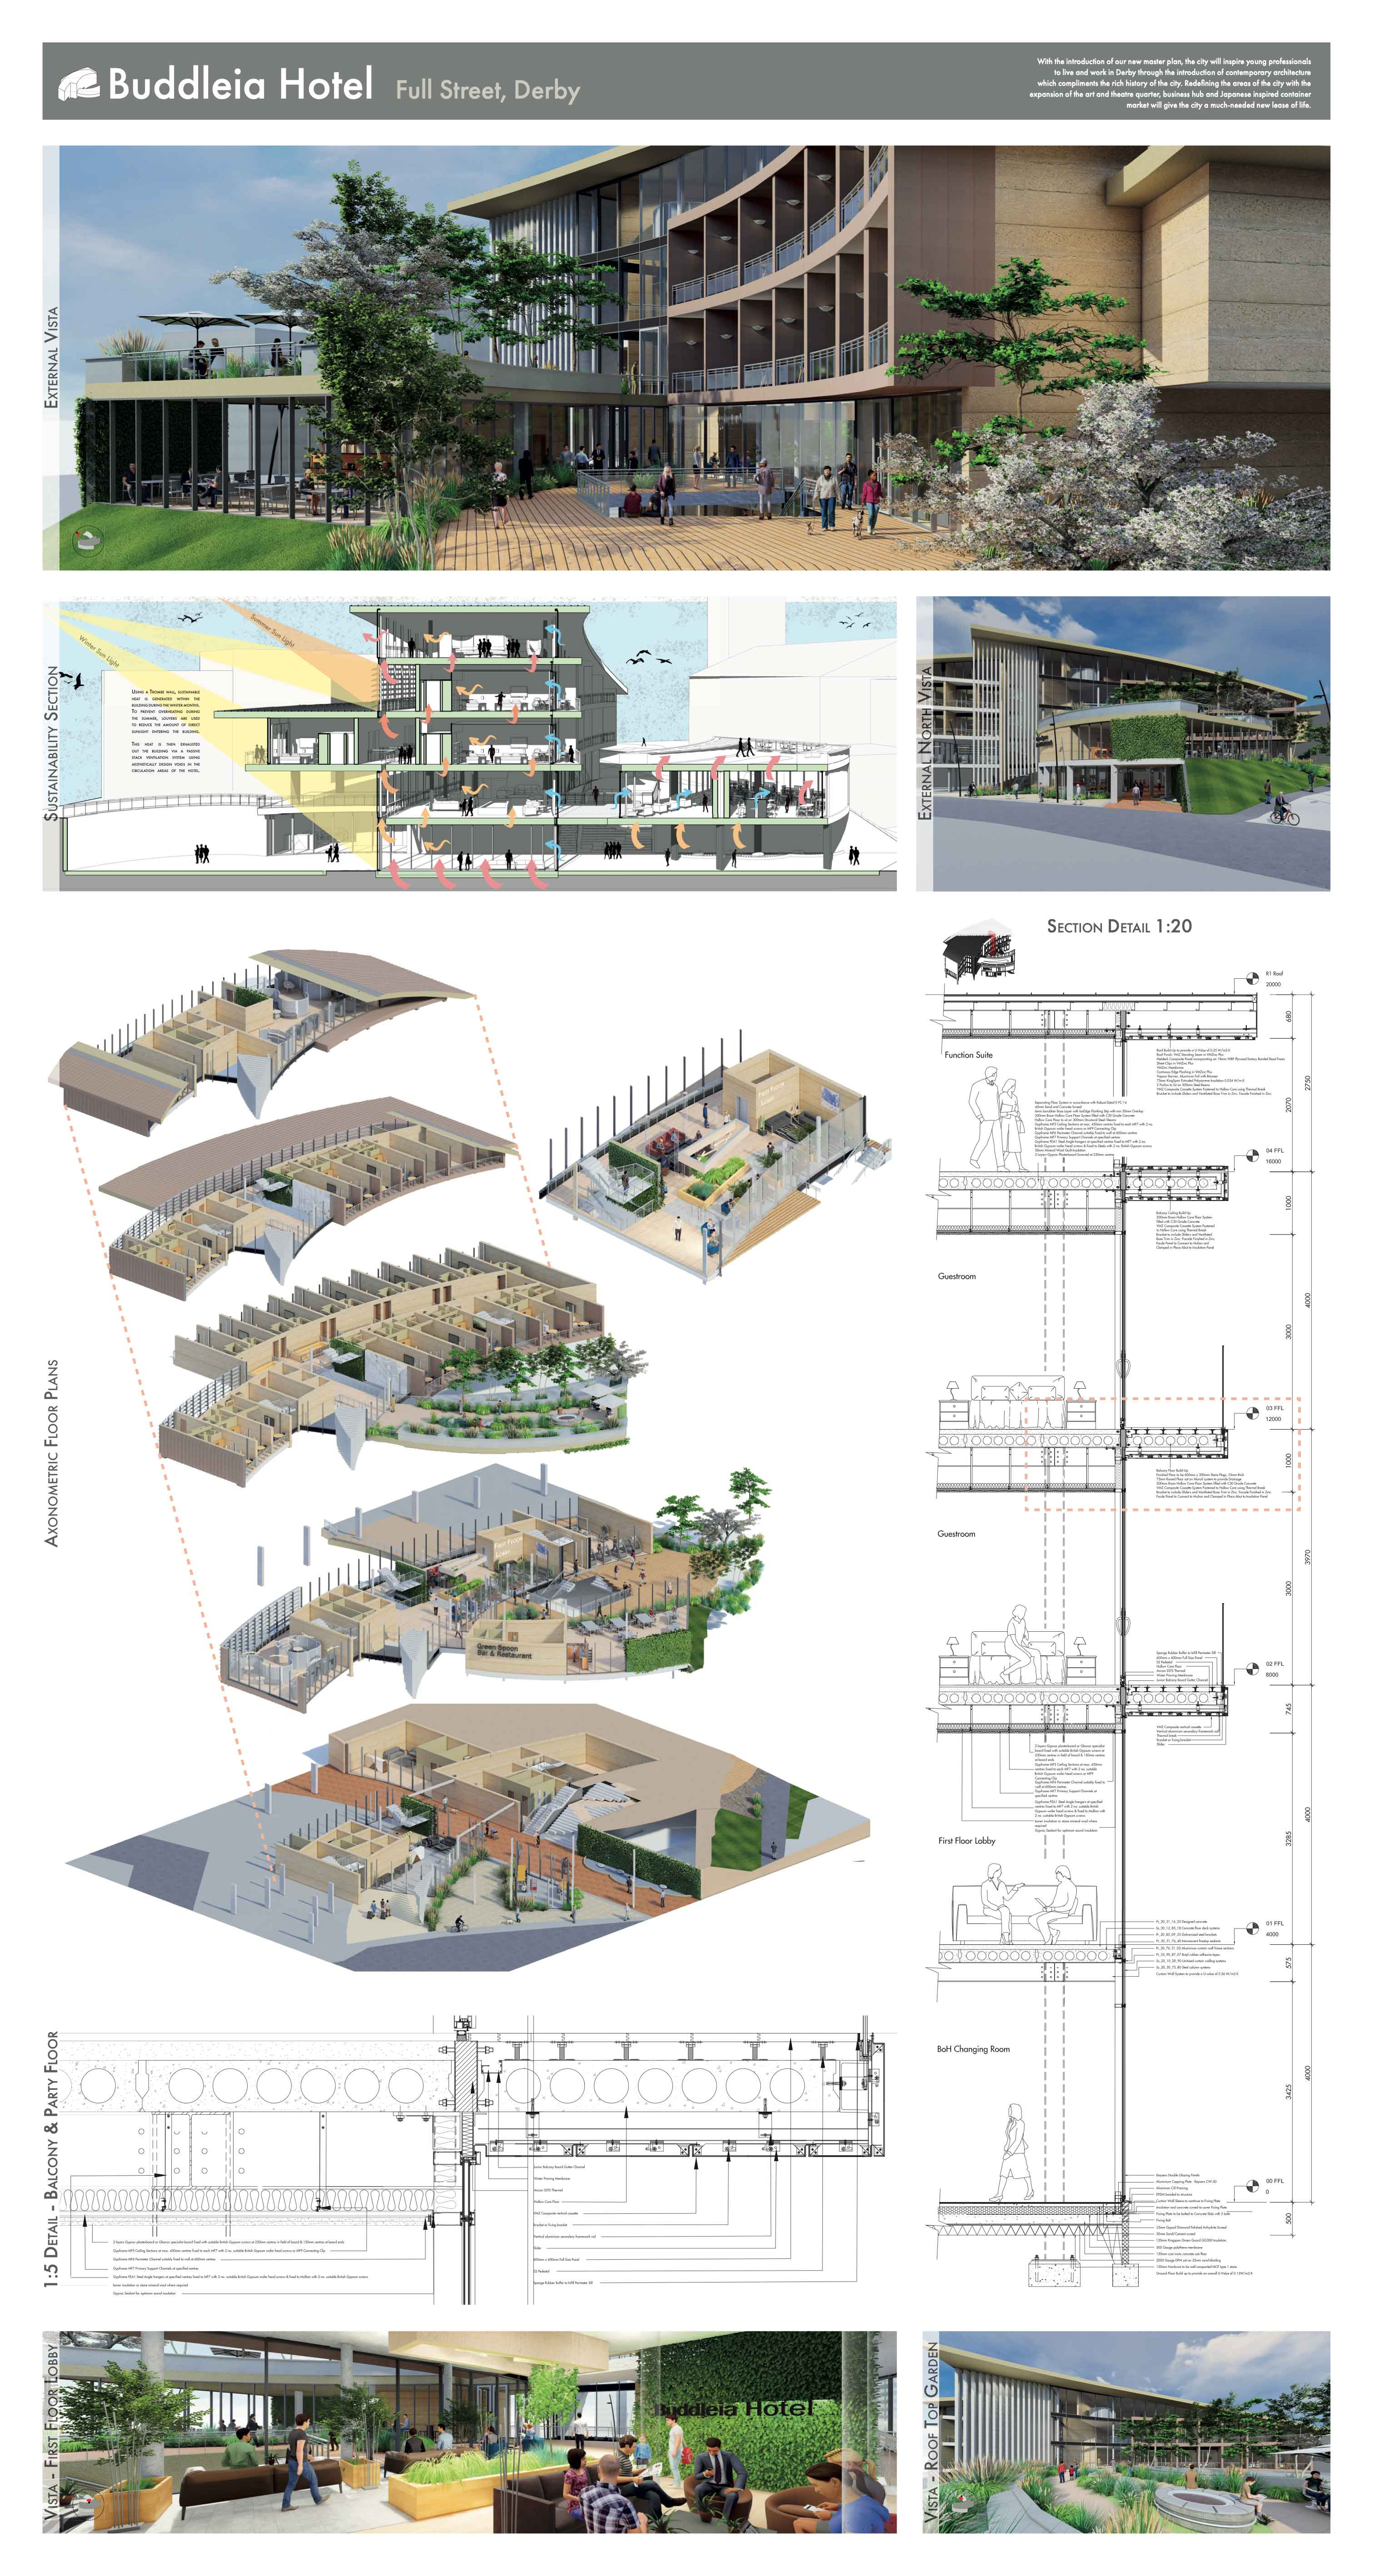 page two of Buddleia Hotel Project Overview showing axonometric (3D) floor plans and section detail